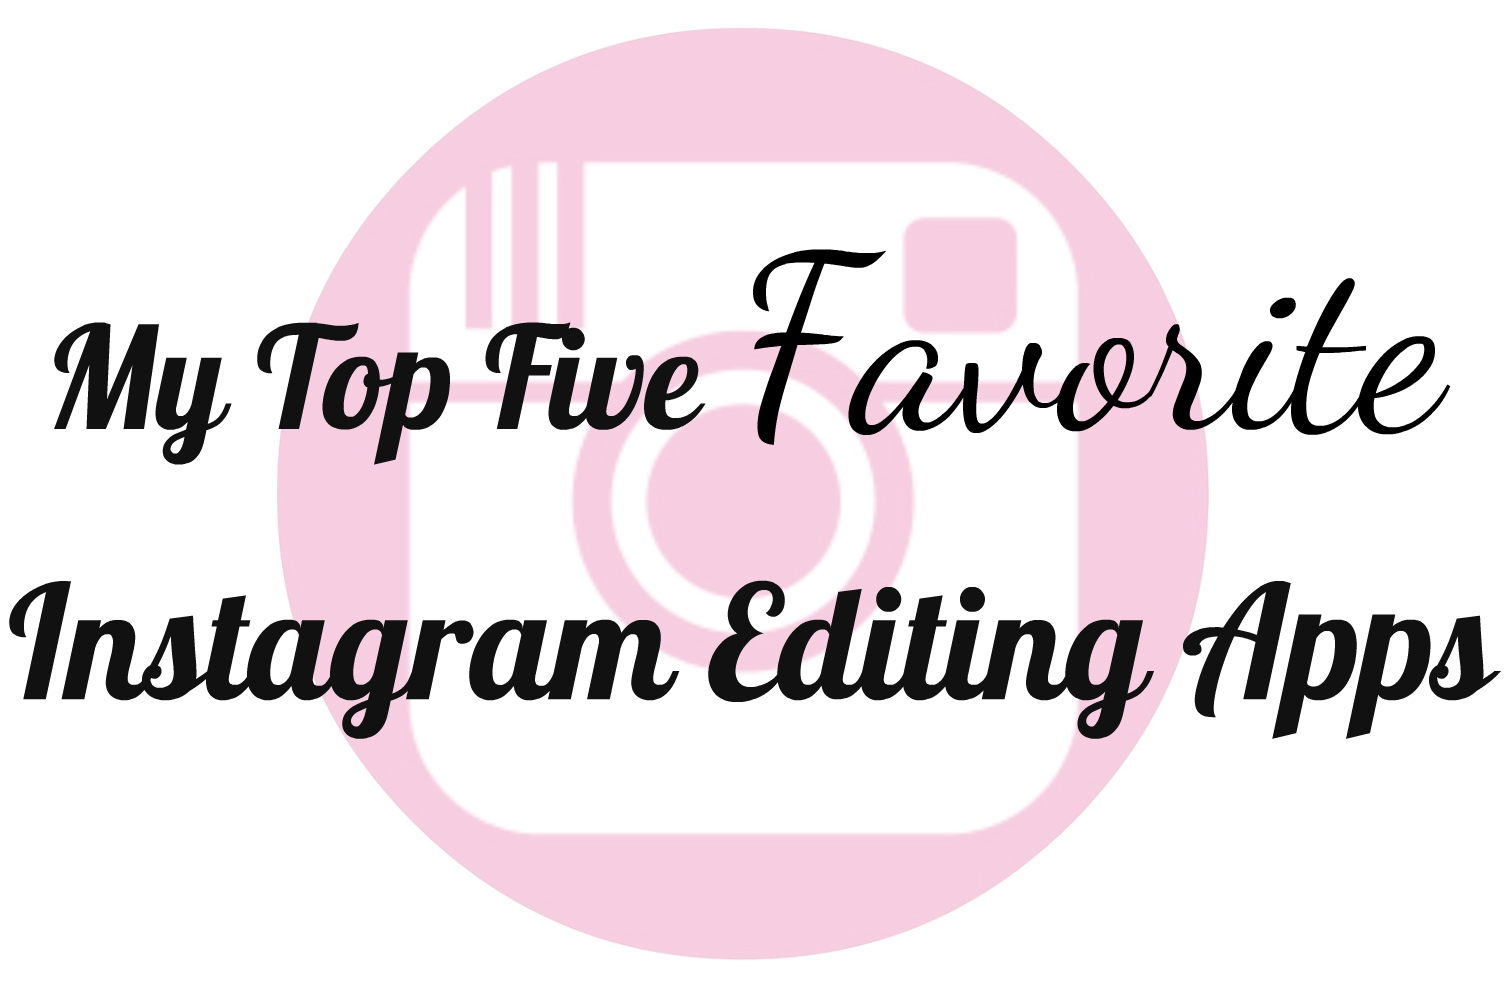 best instagram editing apps, how to edit instagram photos, best instagram filters, best ig filter apps, top editing apps for instagram, how to use filters for instagram, how to use vsco, lifestyle blogger photo editing, top influencer instagram filters, most popular instagram editing apps